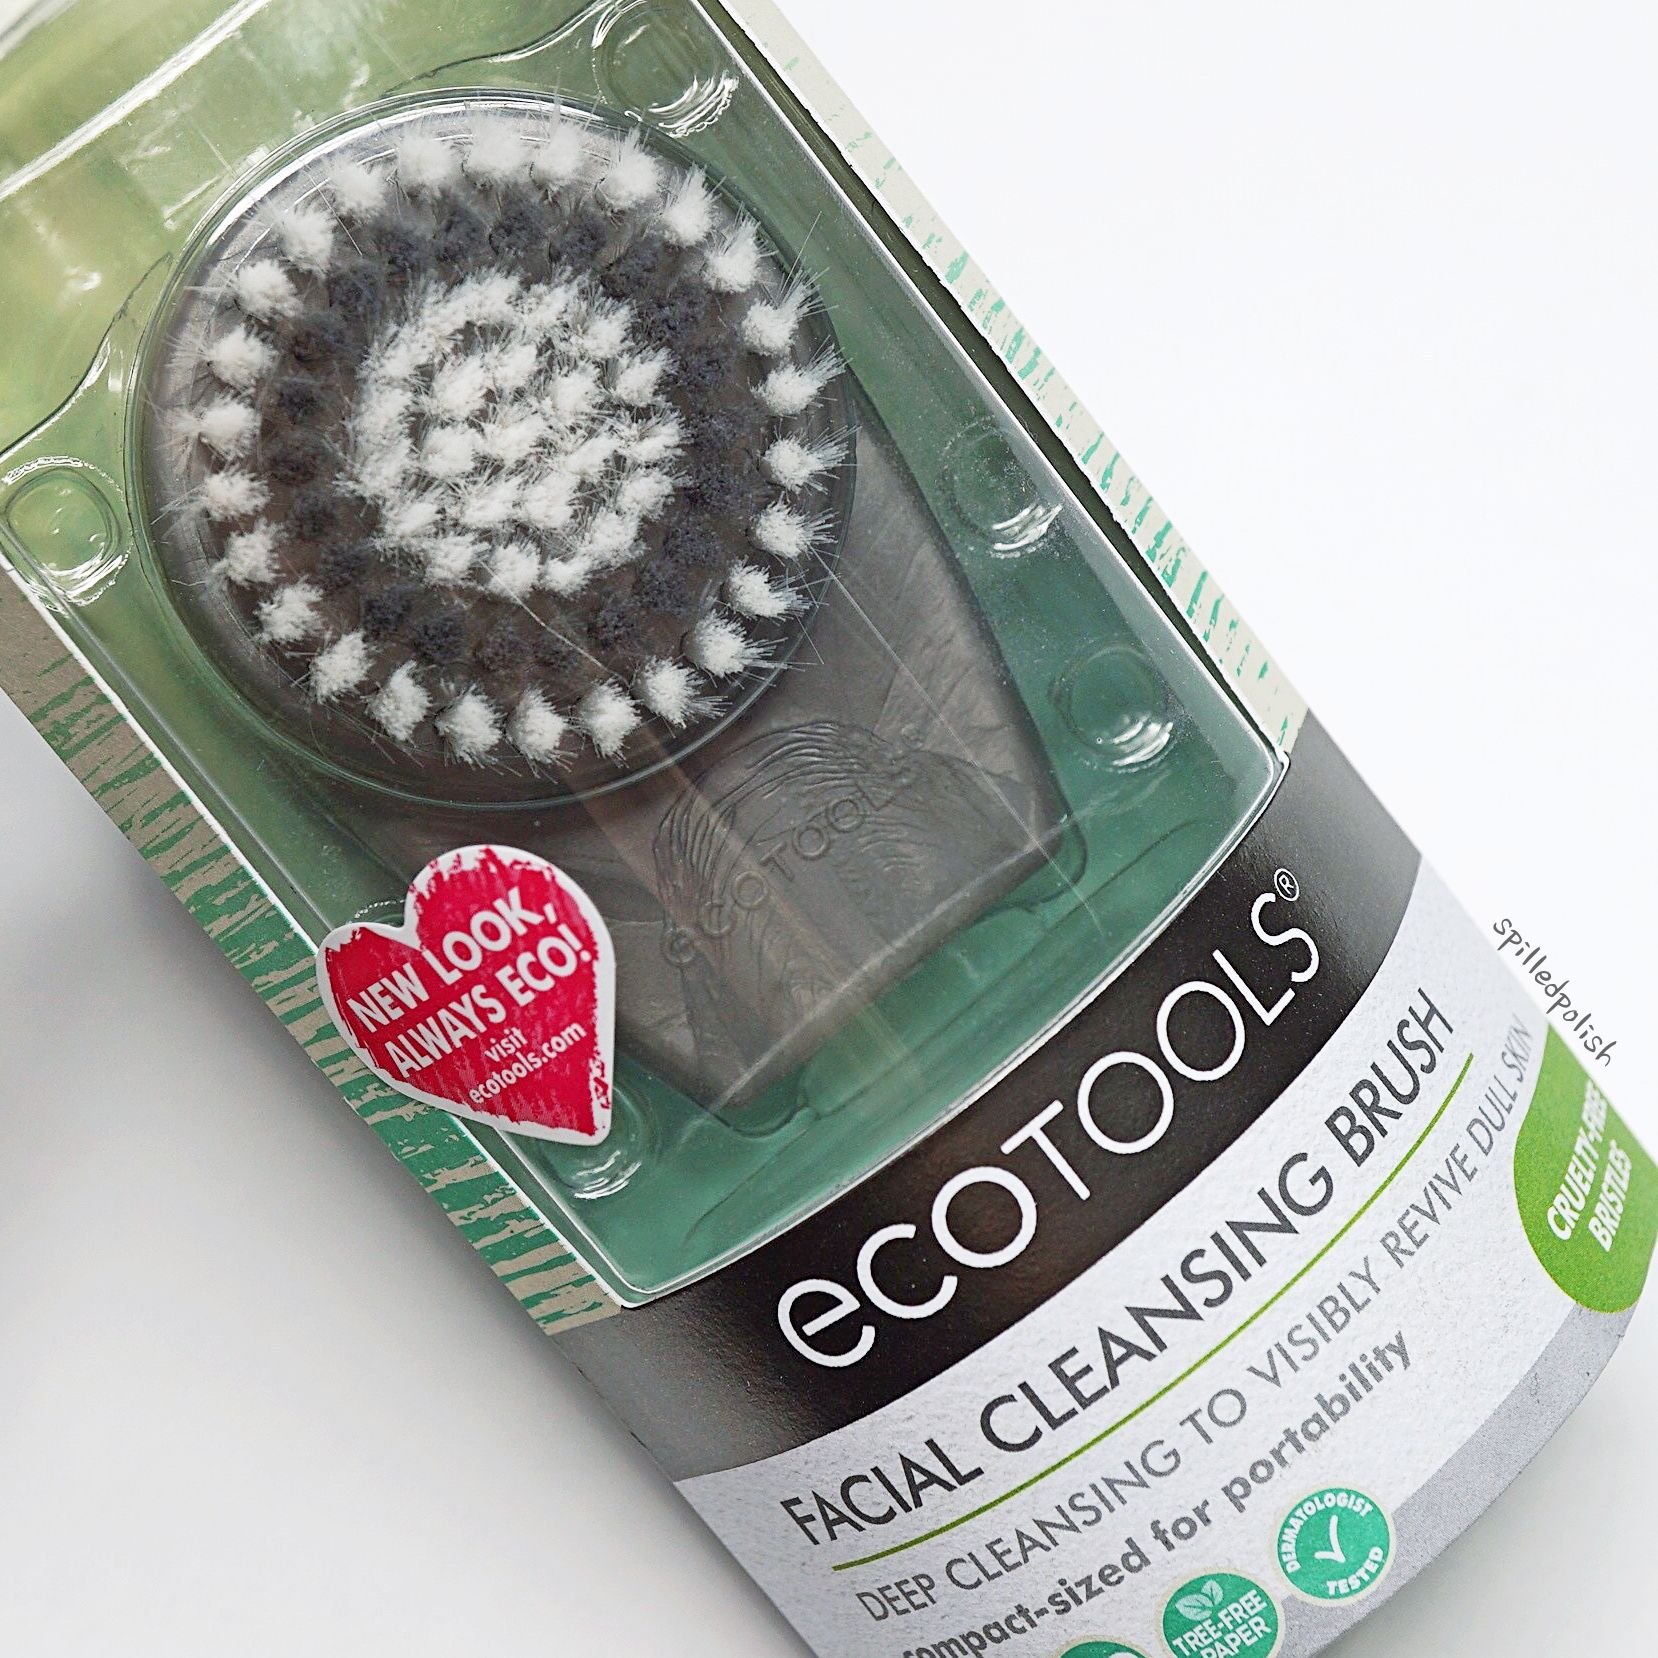 EcoTools Facial Cleansing Brush Review Facial cleansing